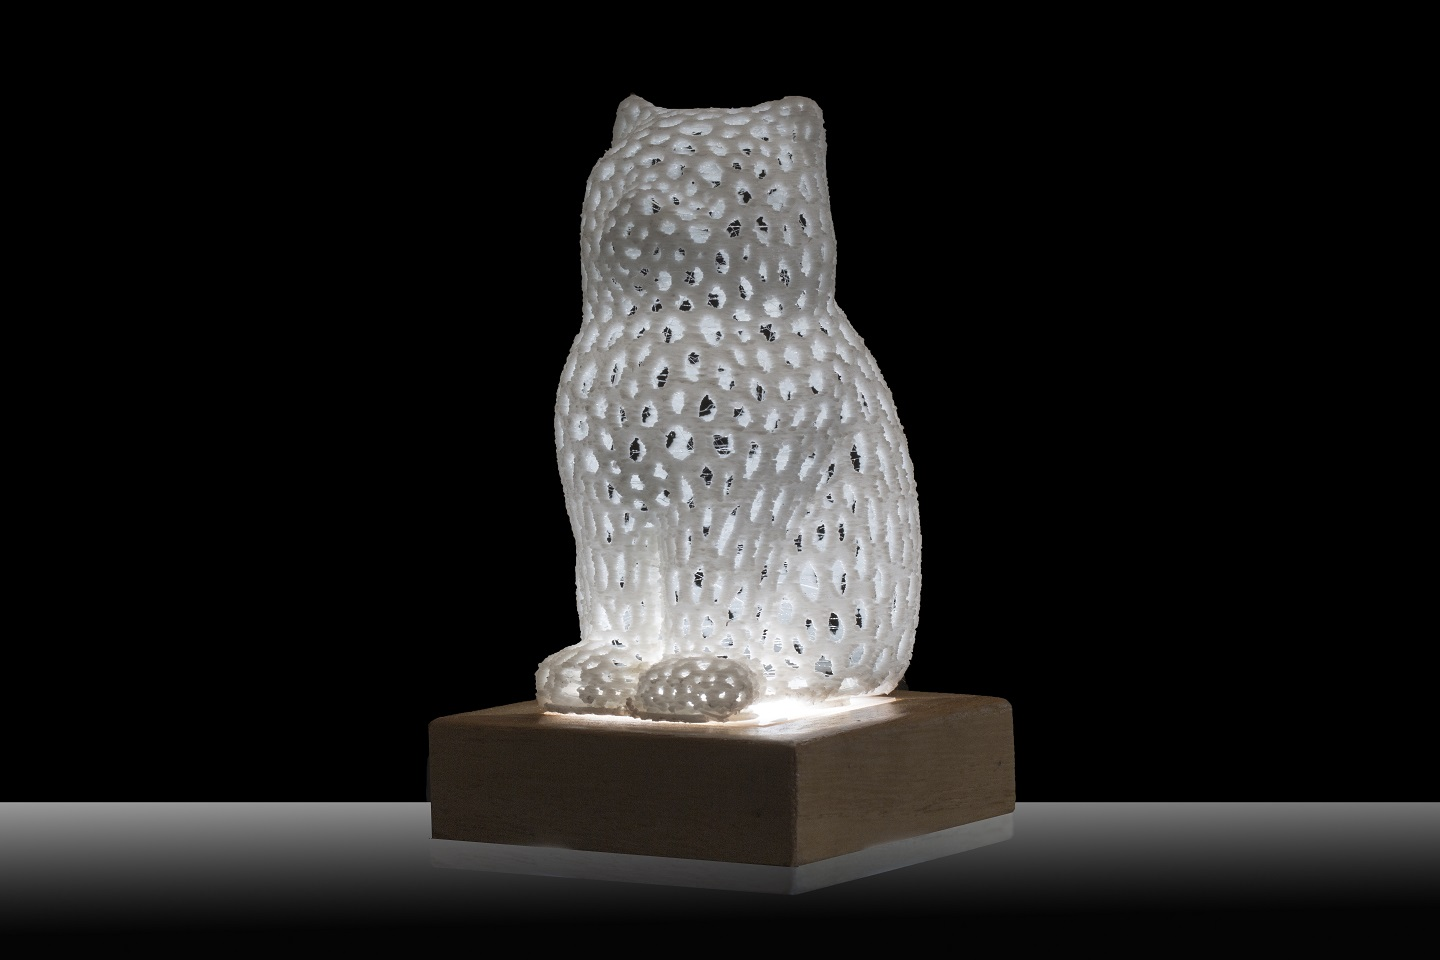 Art and Light LED through 3D Model - ARTELUX GATTO BIANCO